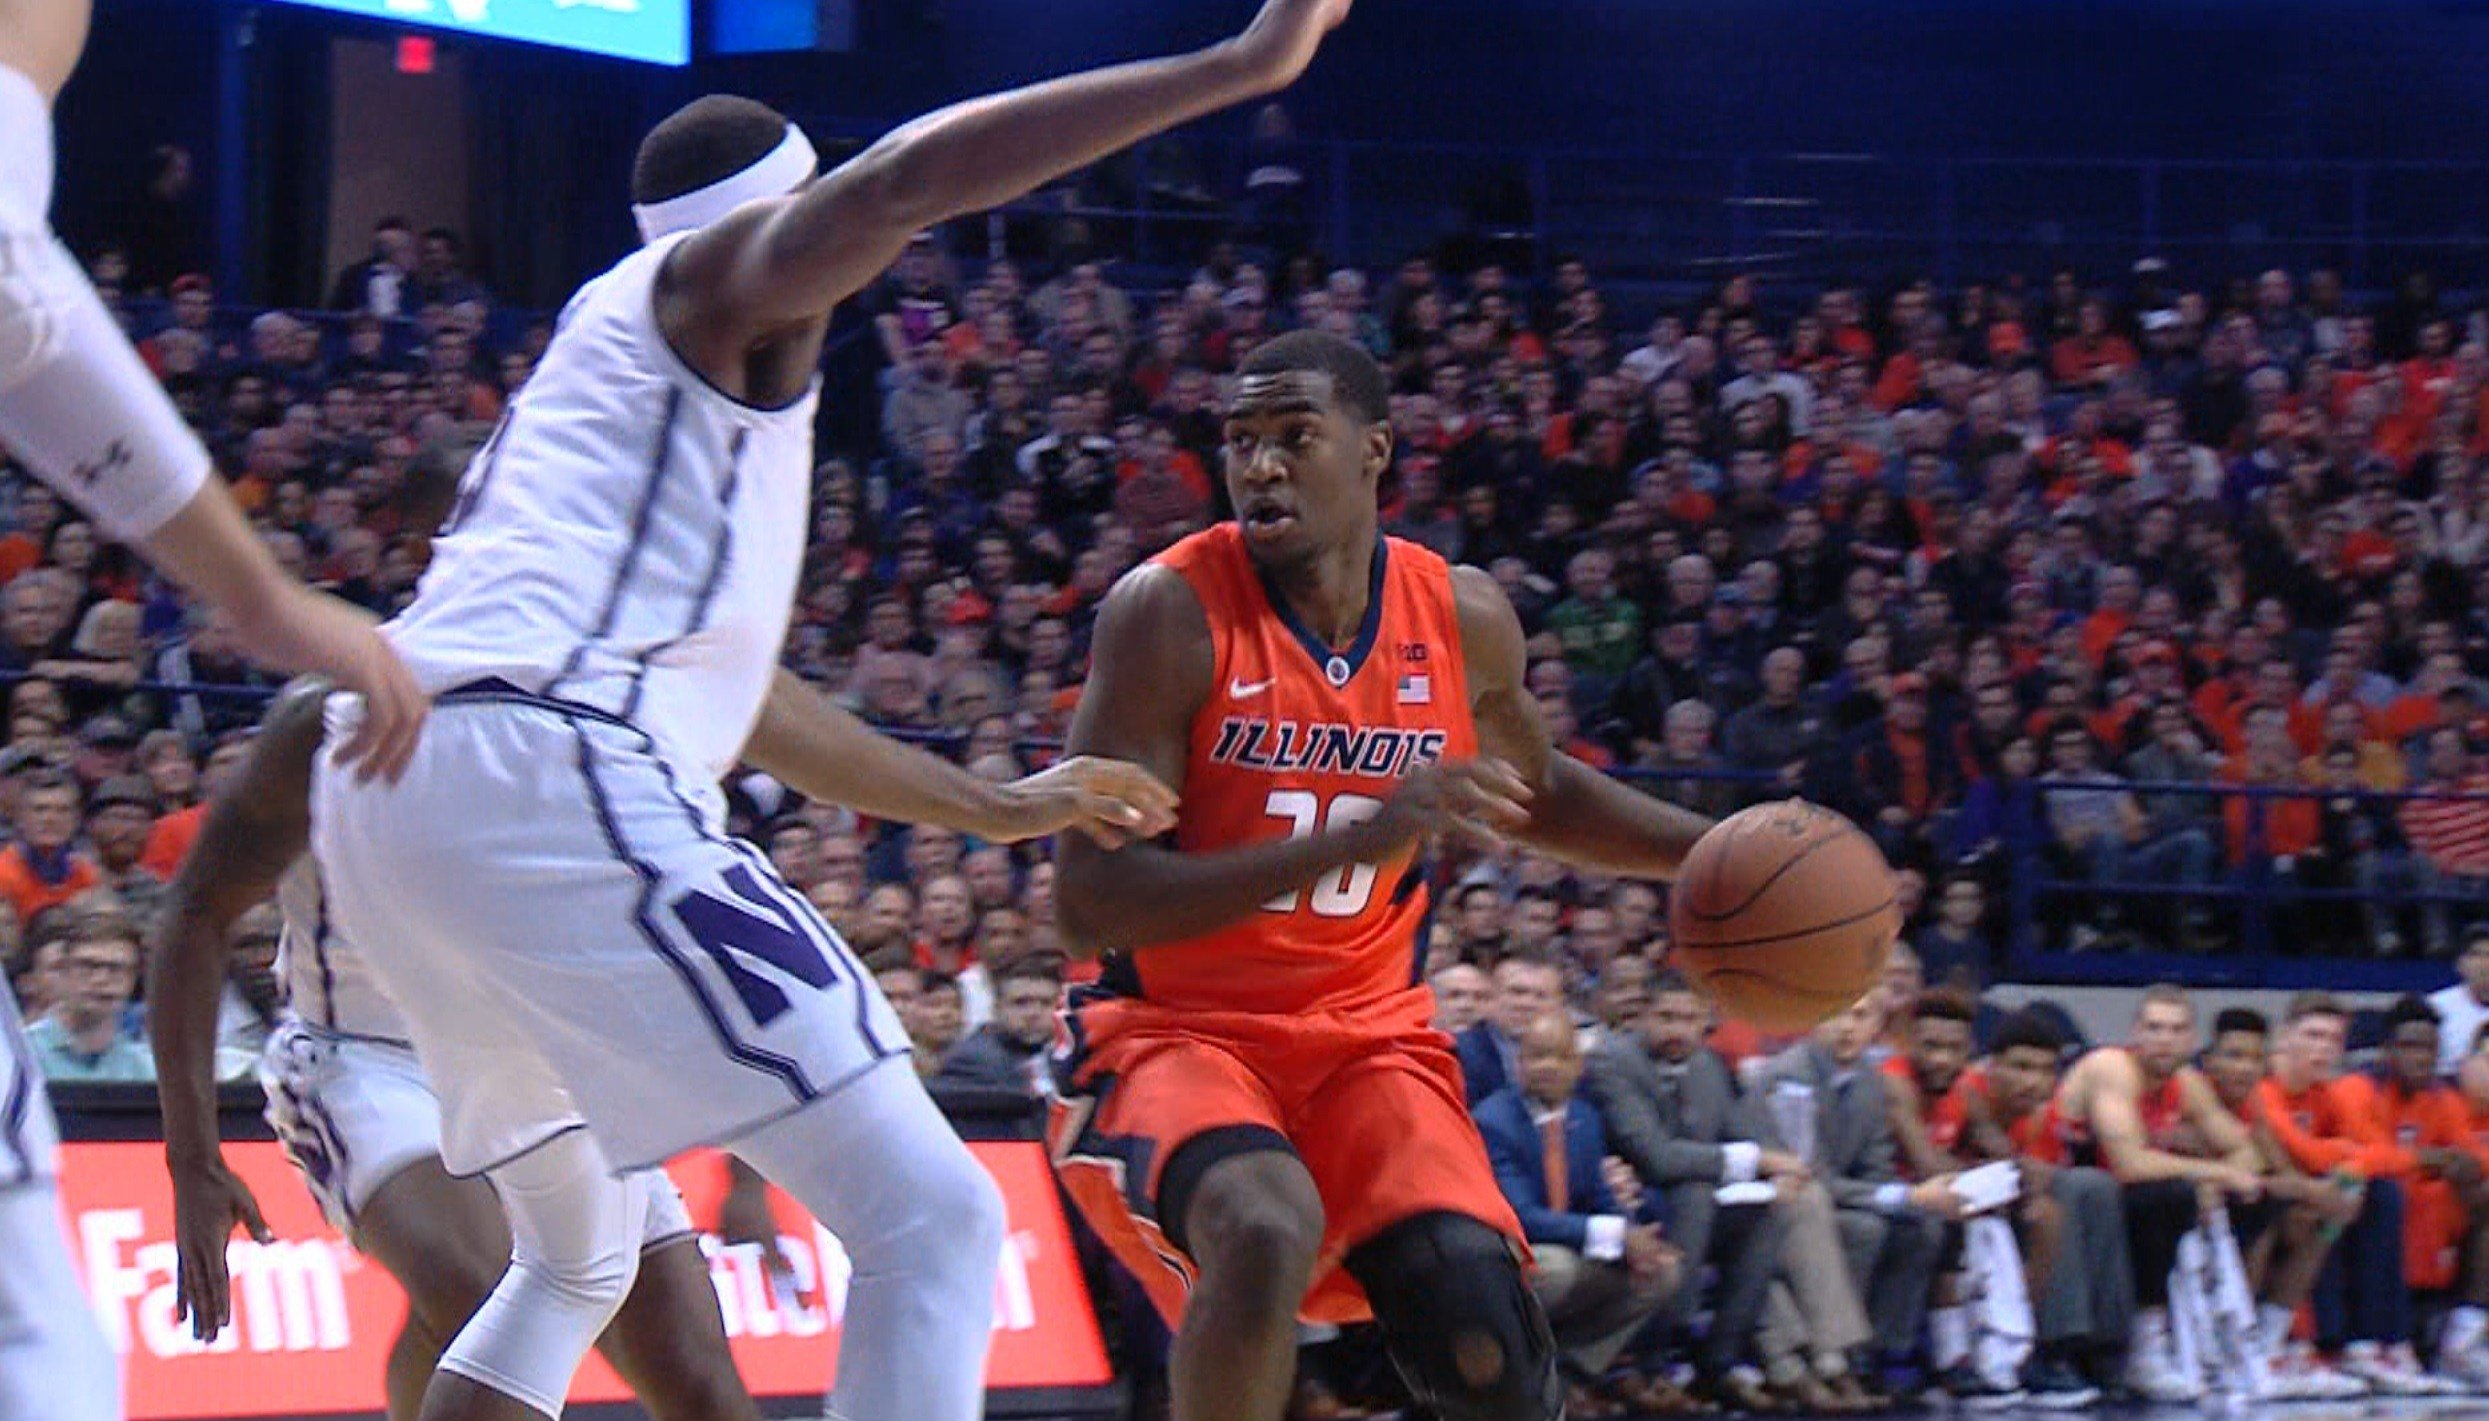 Peoria native Da'Monte Williams has carved out a significant role with the Illini as a freshman, playing 17.8 minutes per game.